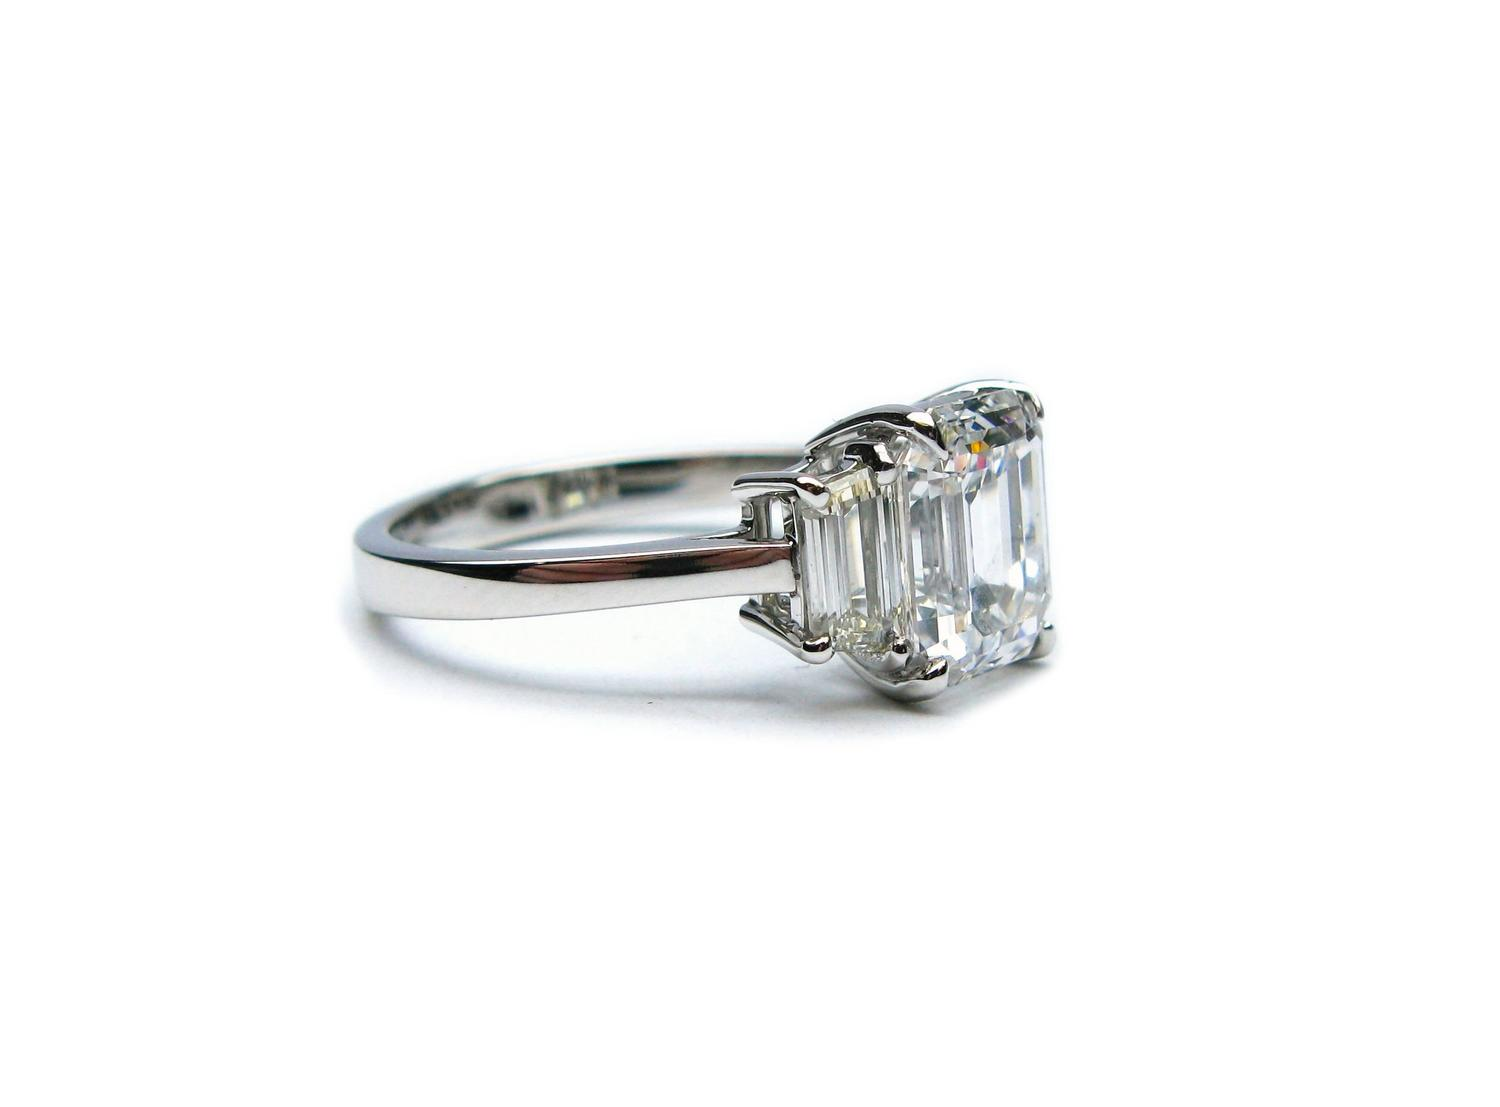 2 06 Carat Emerald Cut Diamond Platinum Engagement Ring For Sale at 1stdibs